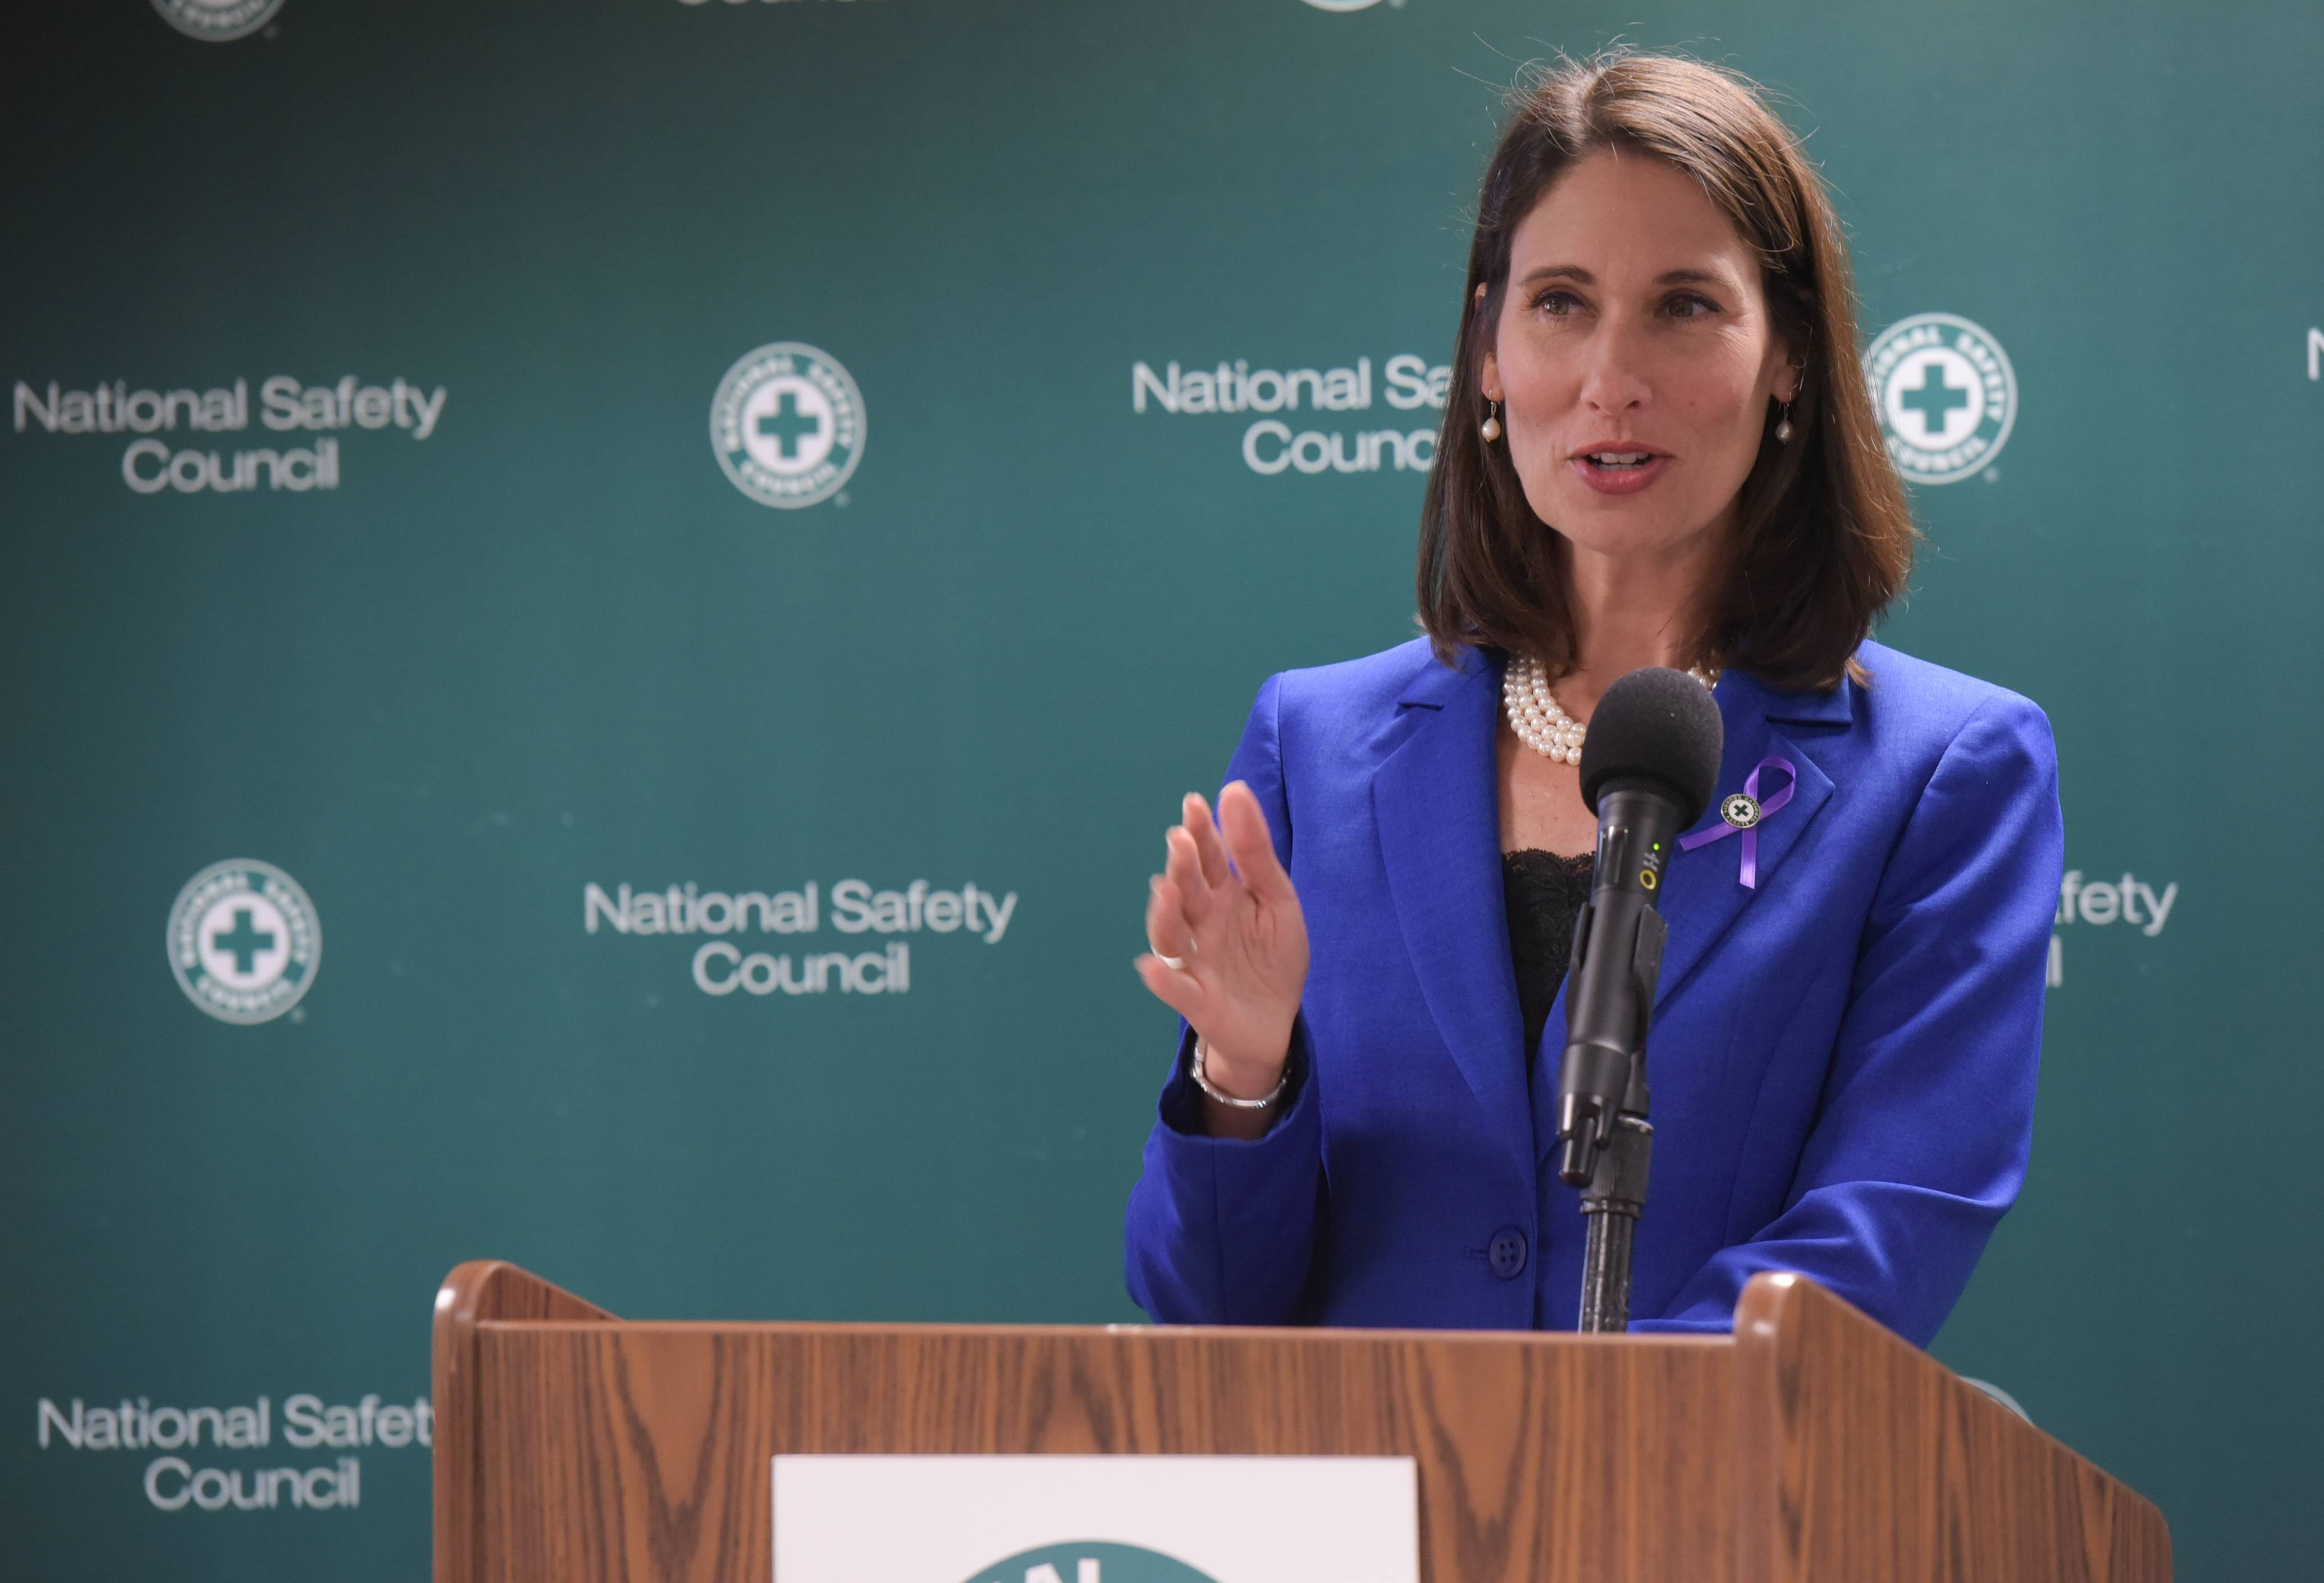 Deborah Hersman, president and CEO of The National Safety Council, unveils statewide poll results Aug. 31 about opioid abuse and overdoses.